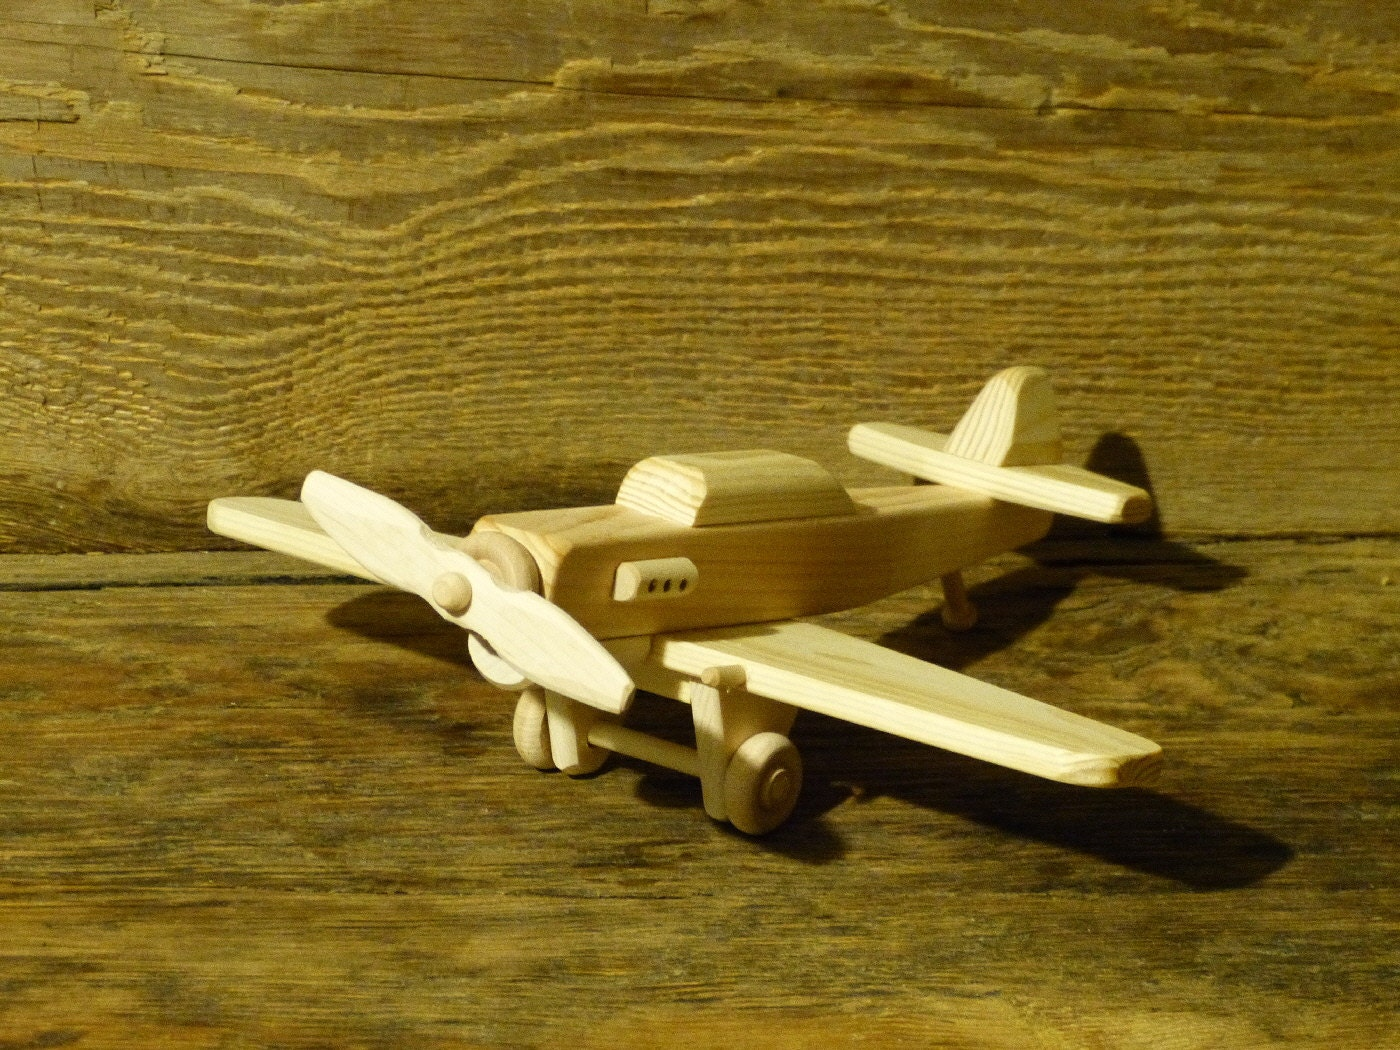 Handmade Wood Toy Fighter Plane P-40 World War 2 Airplane